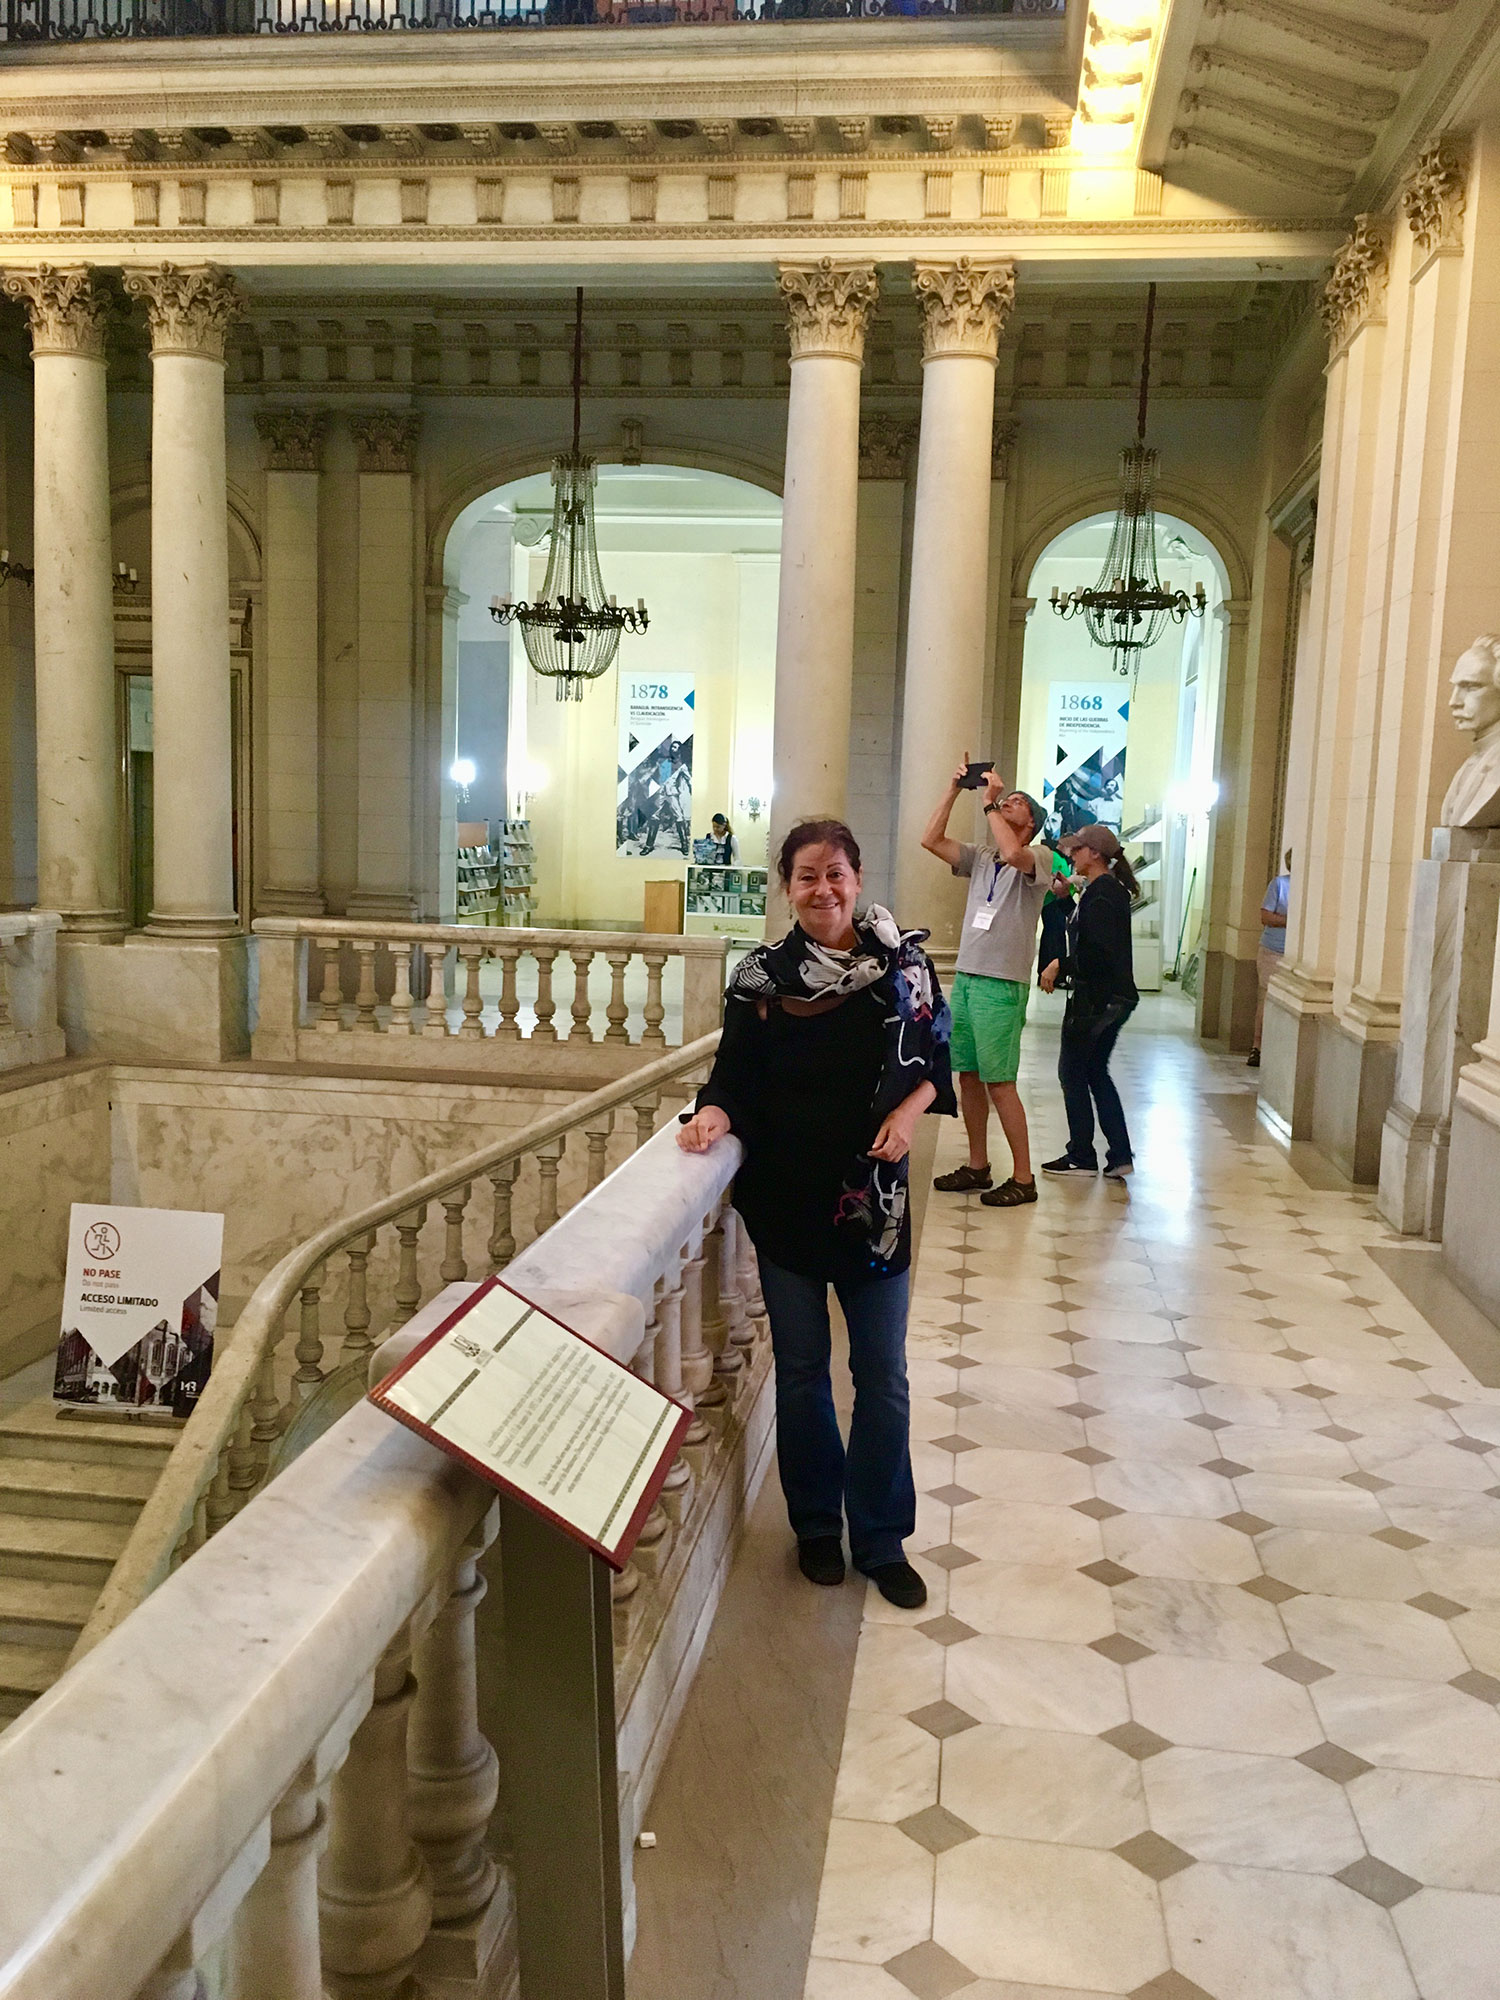 I am posing at the central staircase, the focus of the palace.